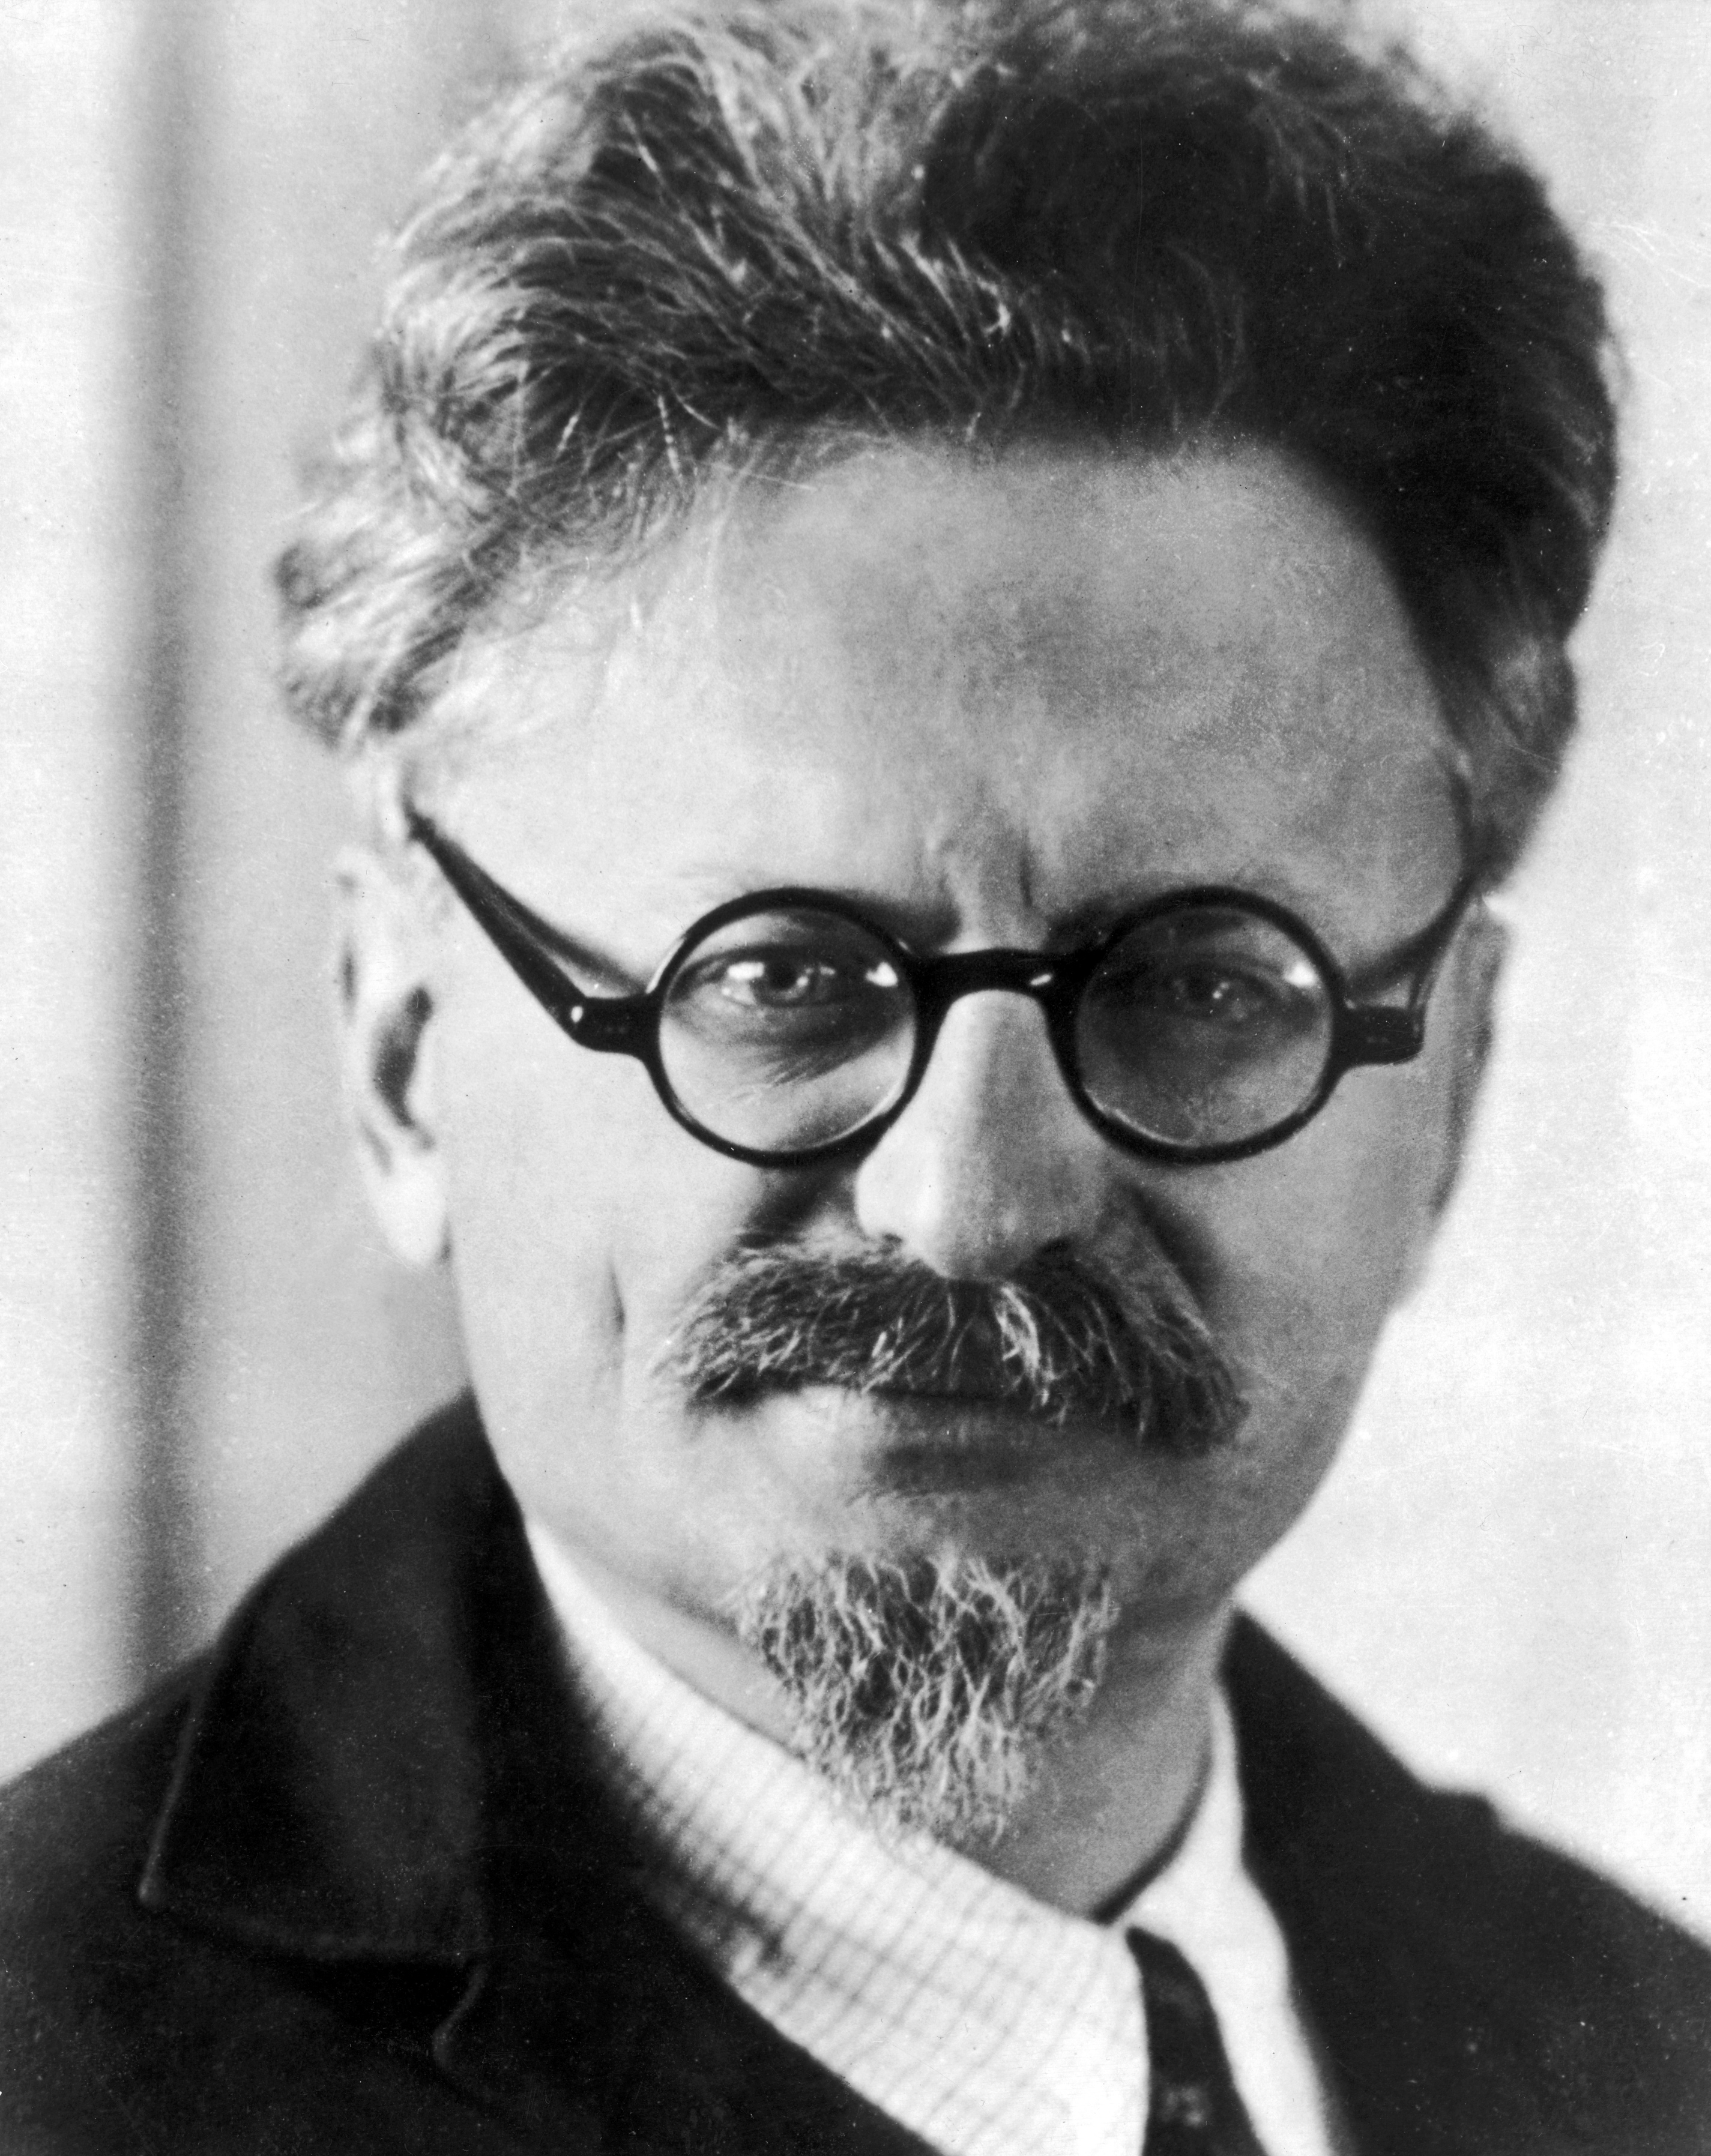 trosky online dating Alexandr trotsky 309801207 isaac asimov 66 essays on the past present fu bookfi uploaded by alexandr trotsky 253075616-dating-expresstxt uploaded by  172395803 everyone s guide to online dating rare uploaded by alexandr trotsky 248531035 essentials of medical laboratory practice lieseke constance l srg uploaded by alexandr trotsky.